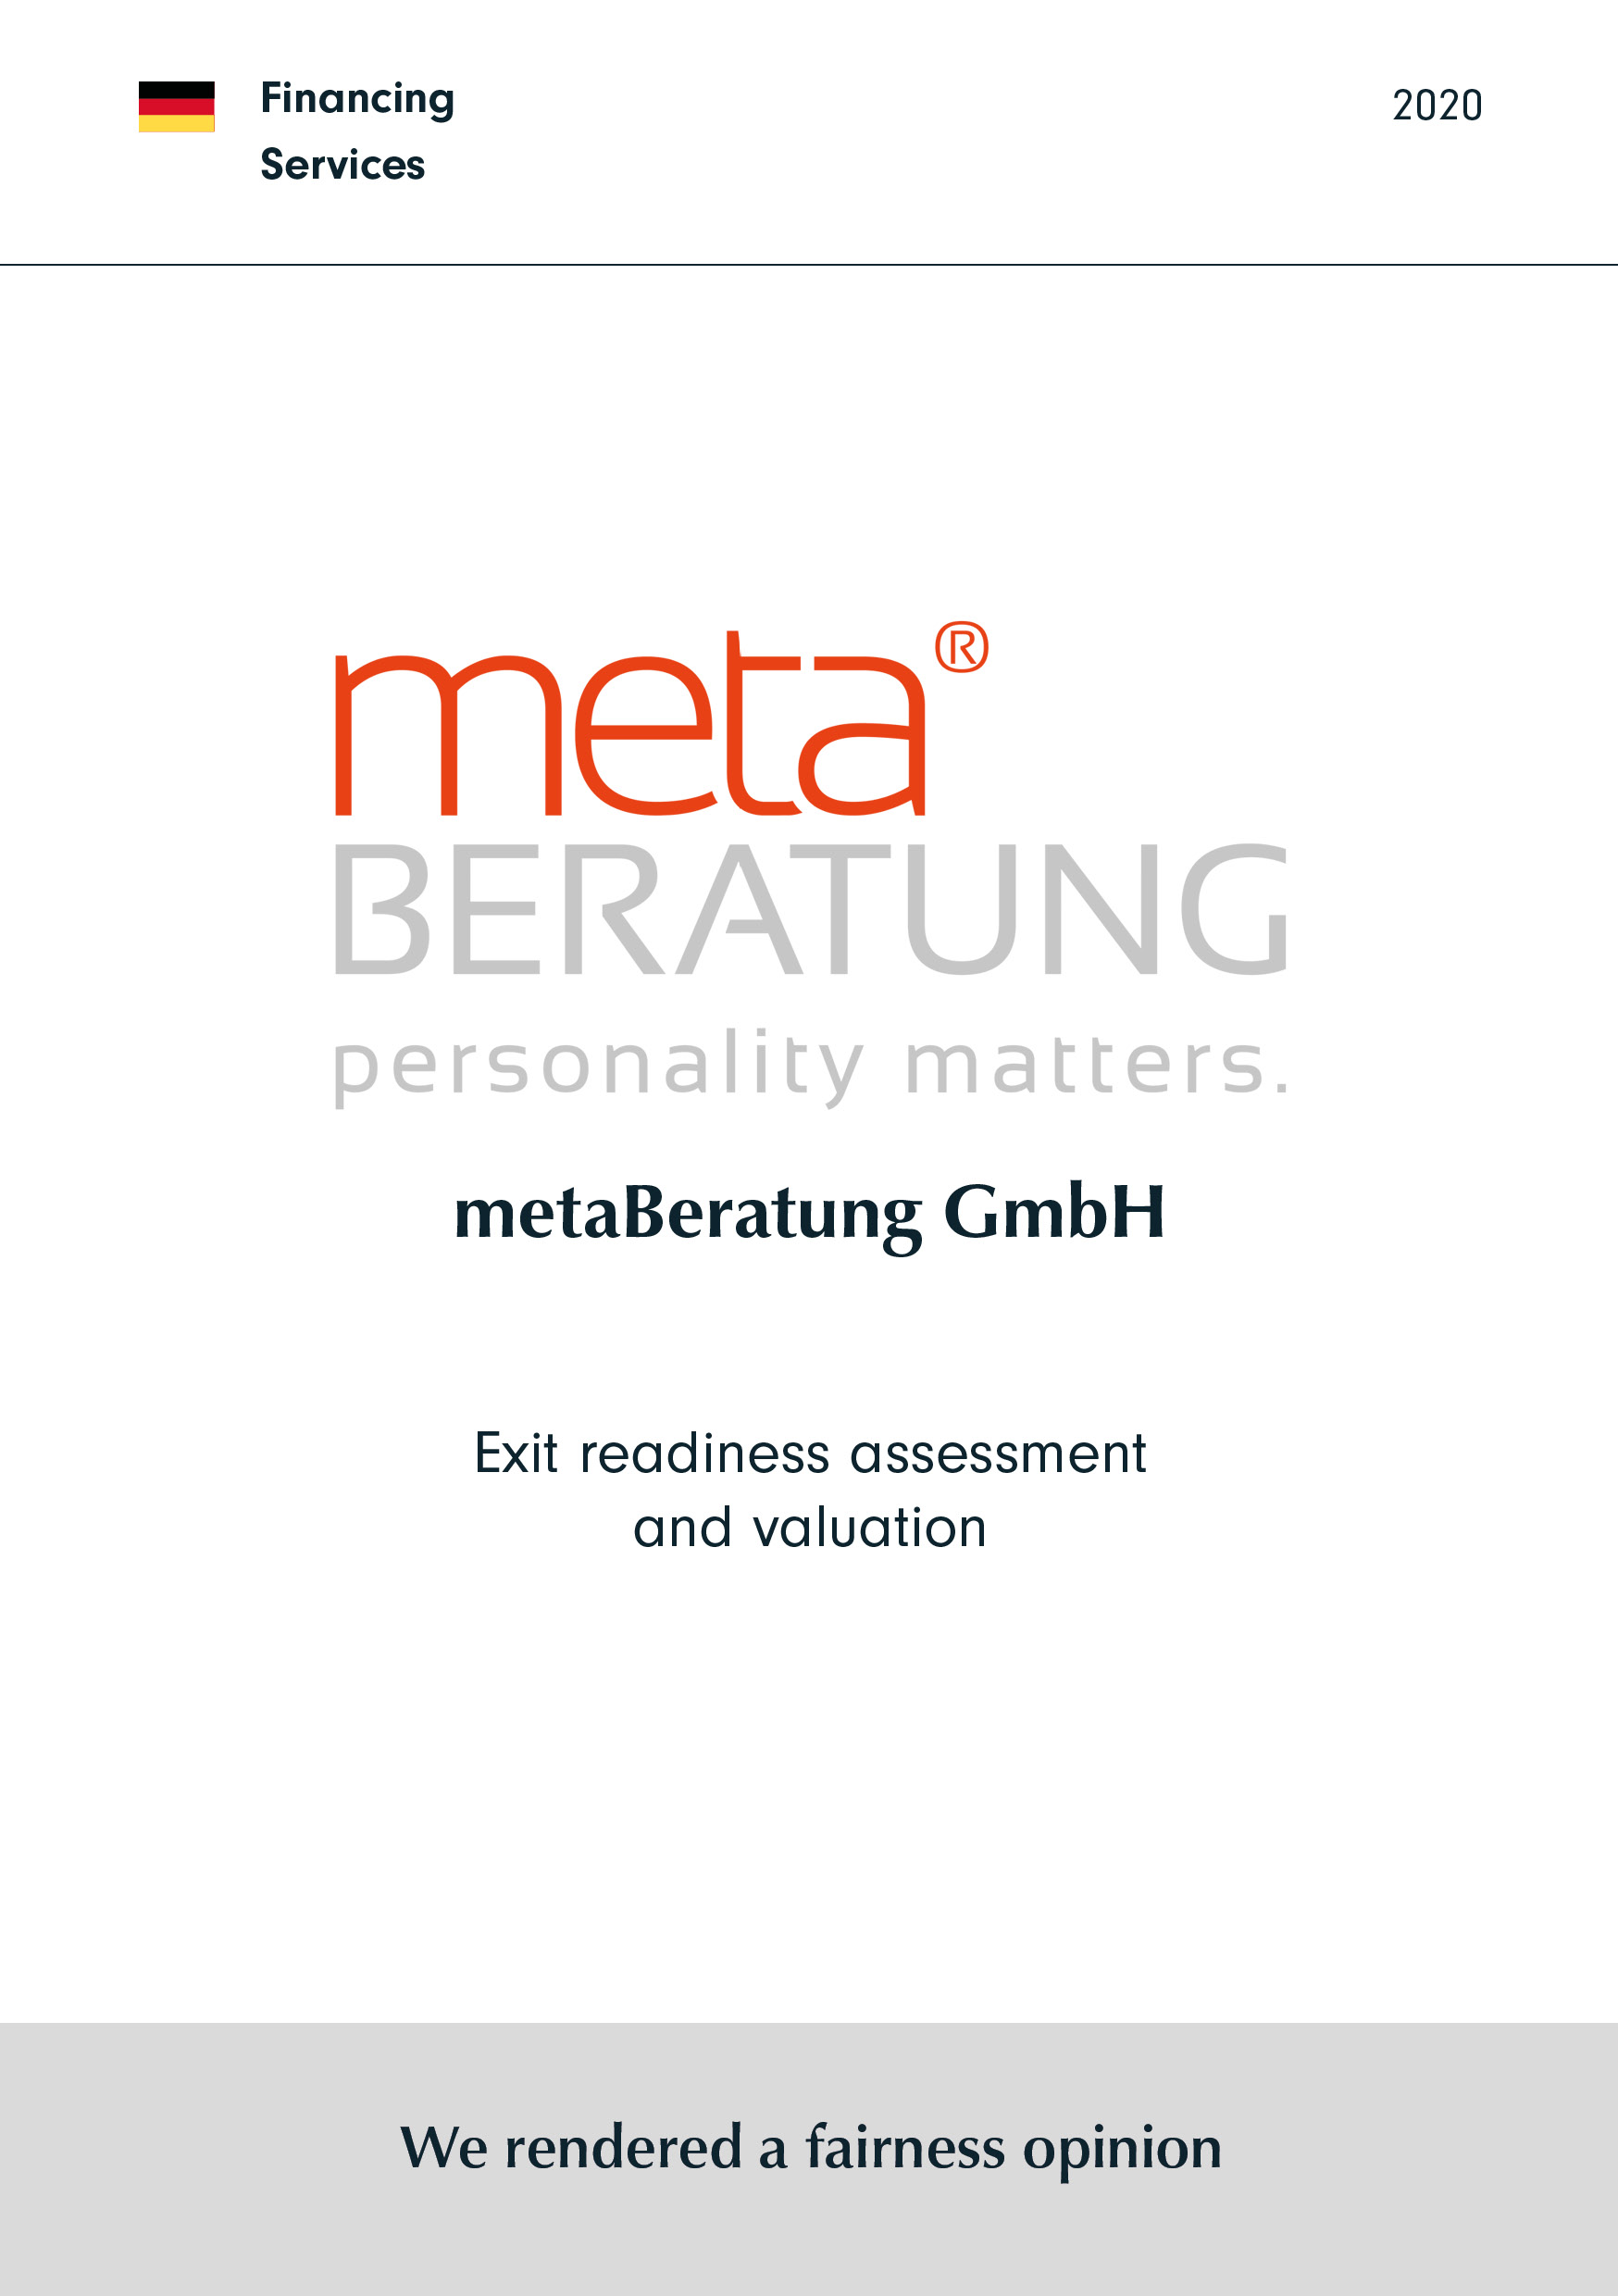 metaBeratung | Exit readiness assessment and valuation